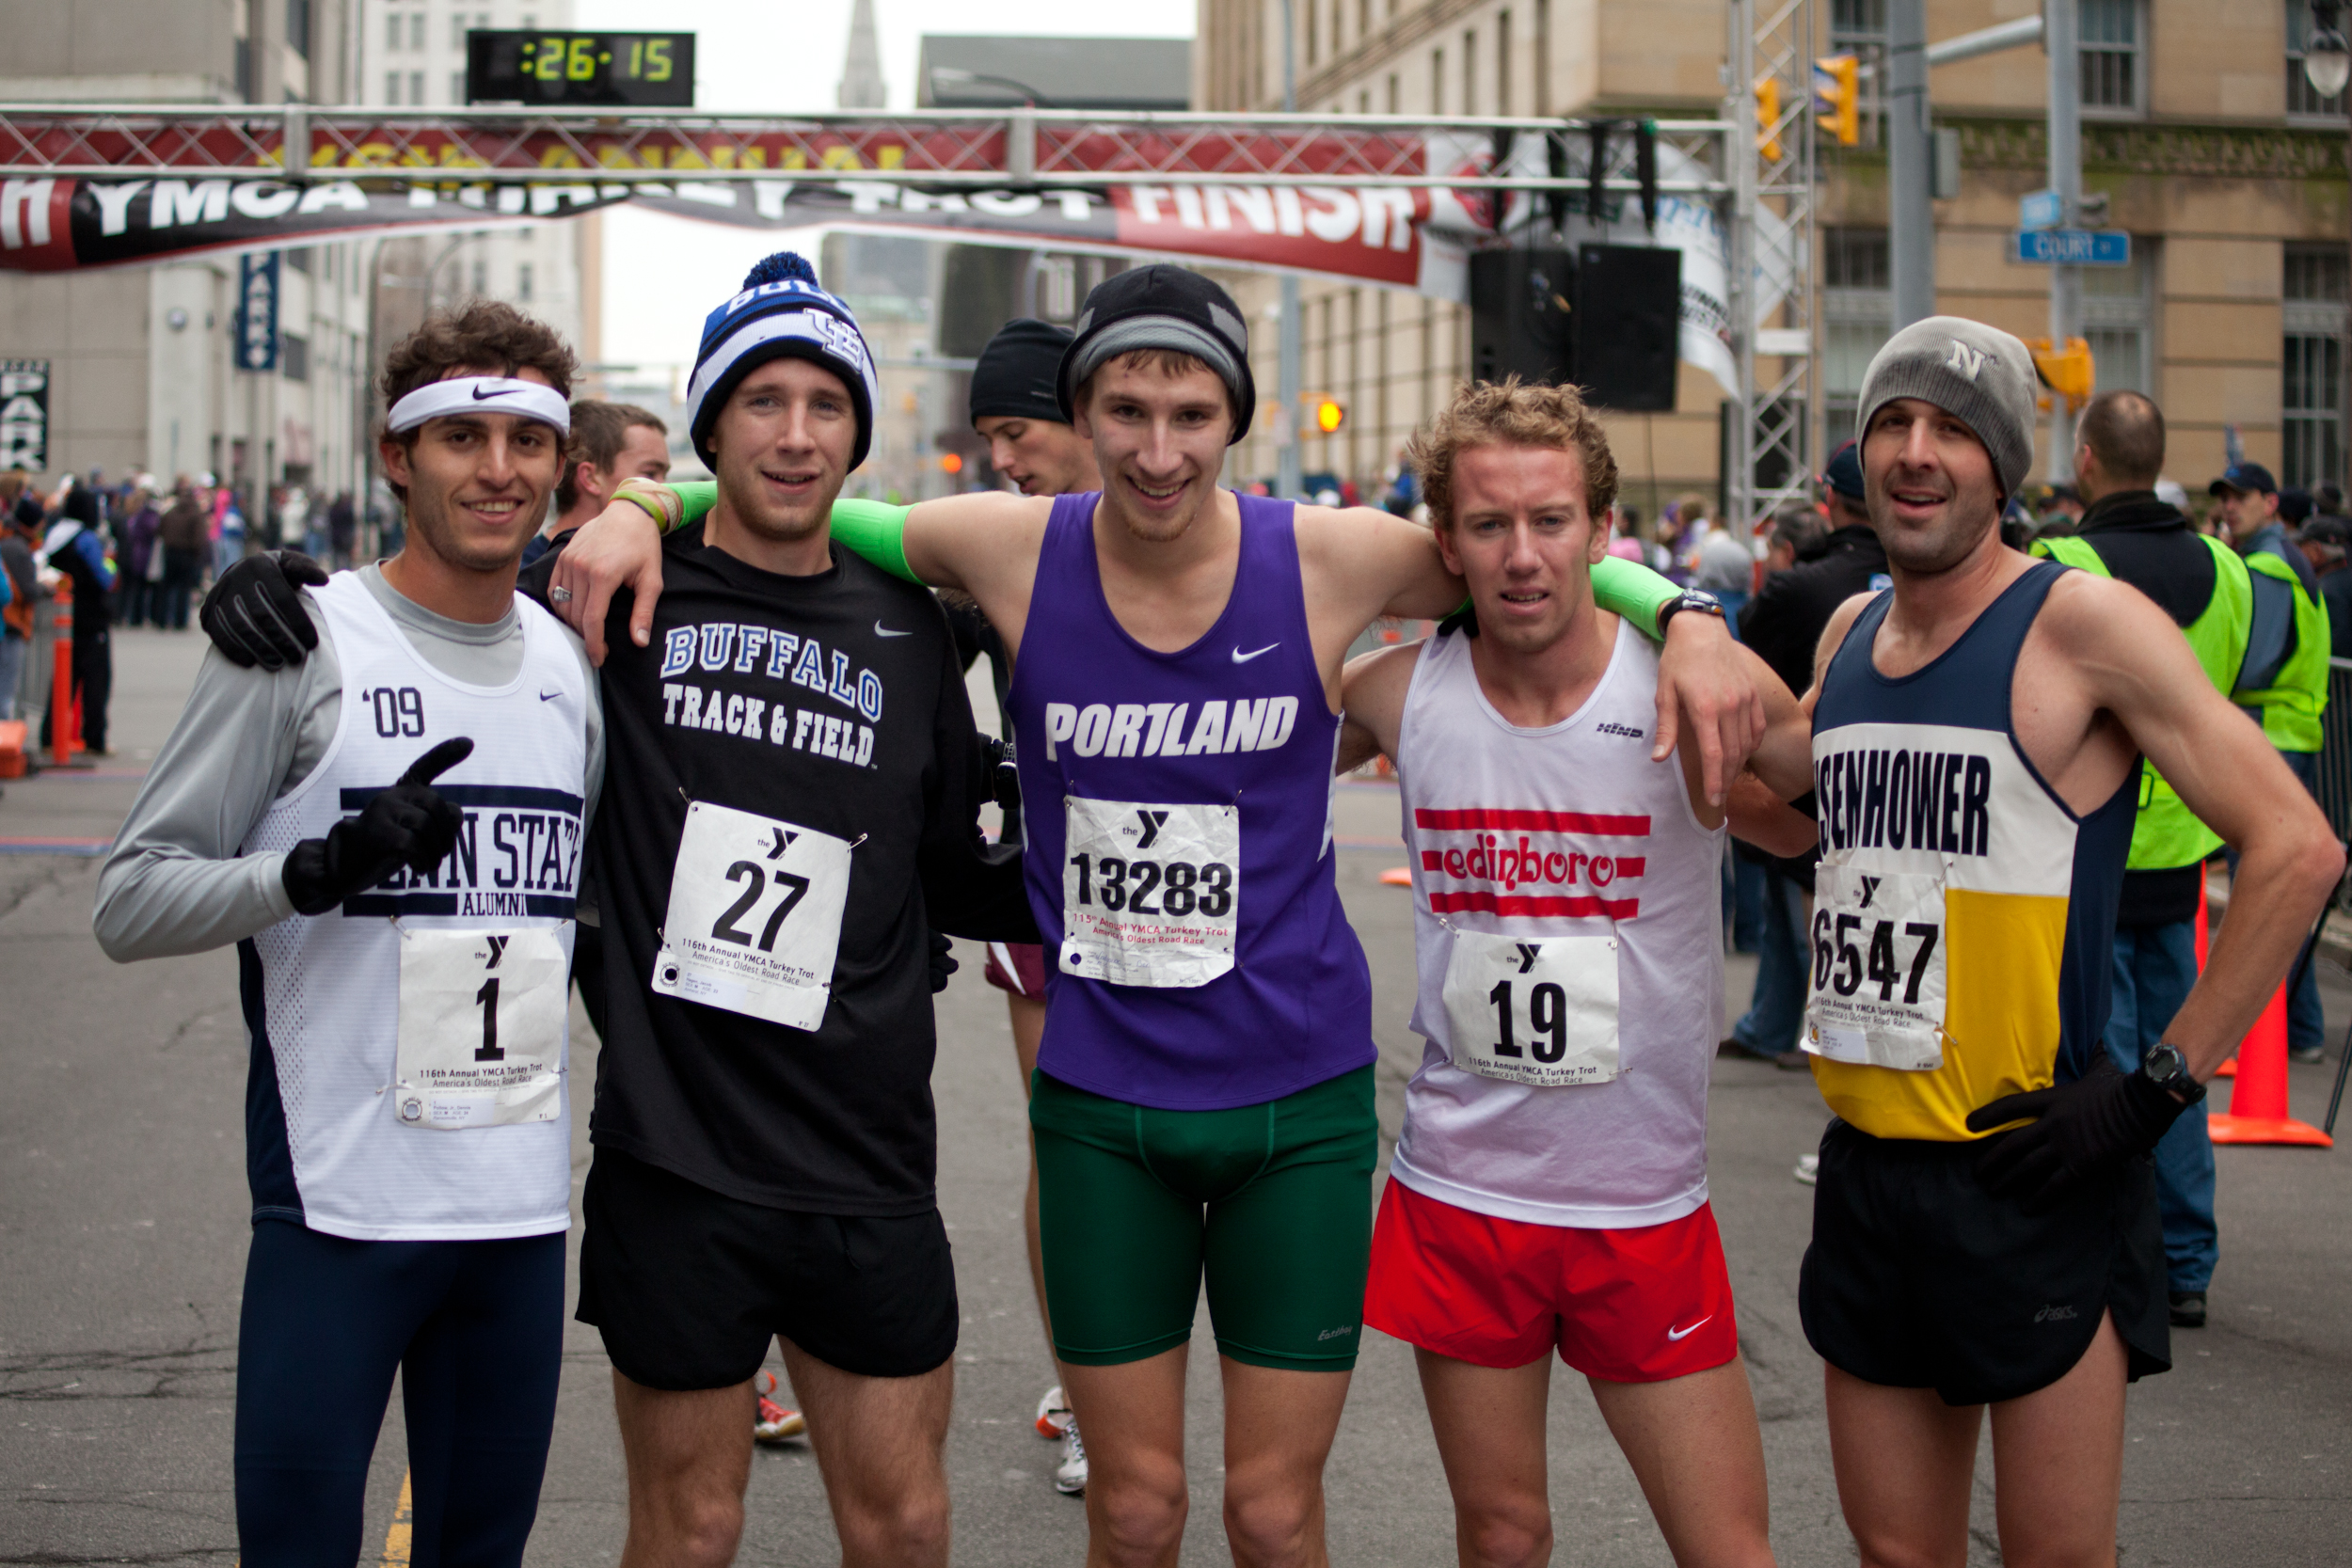 After crossing the finish line, Turkey Trotters posed for WNY Ford.